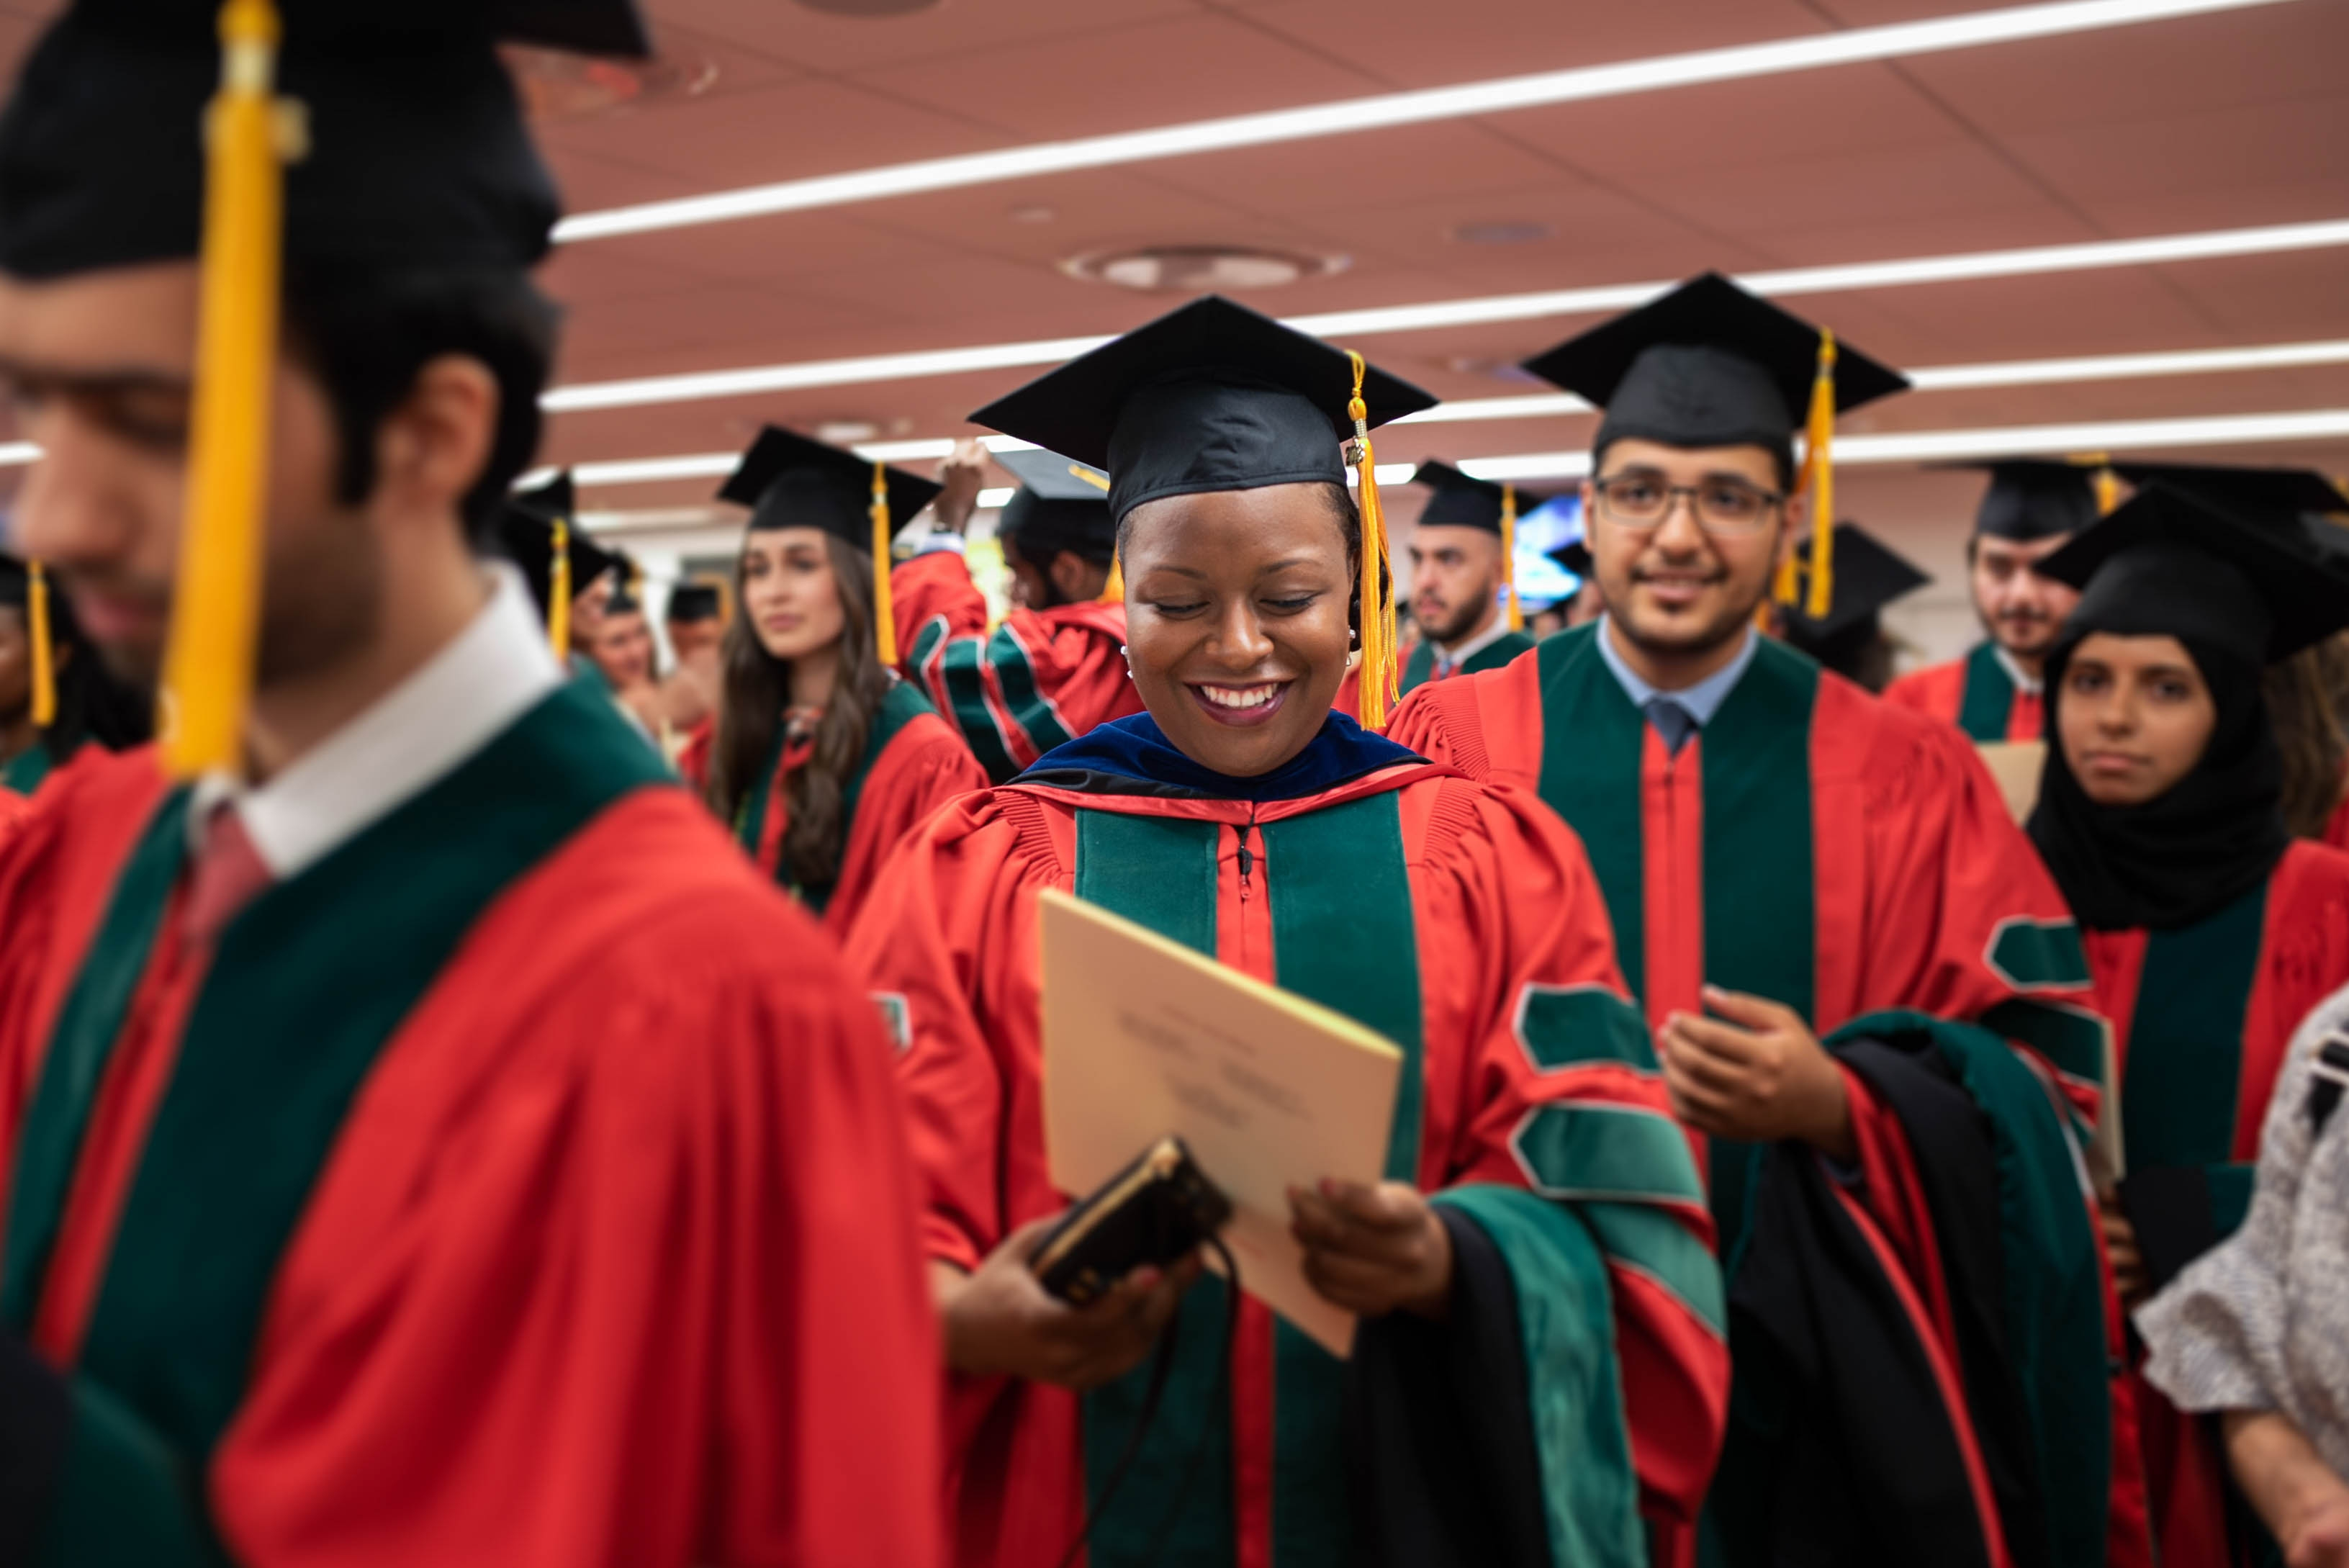 Dr. Rolake Alabi, MD'18, PhD'16 waits backstage before the Commencement ceremony on May 31. All photos taken by Amelia Panico. Click photo to view the full Commencement Flickr gallery.